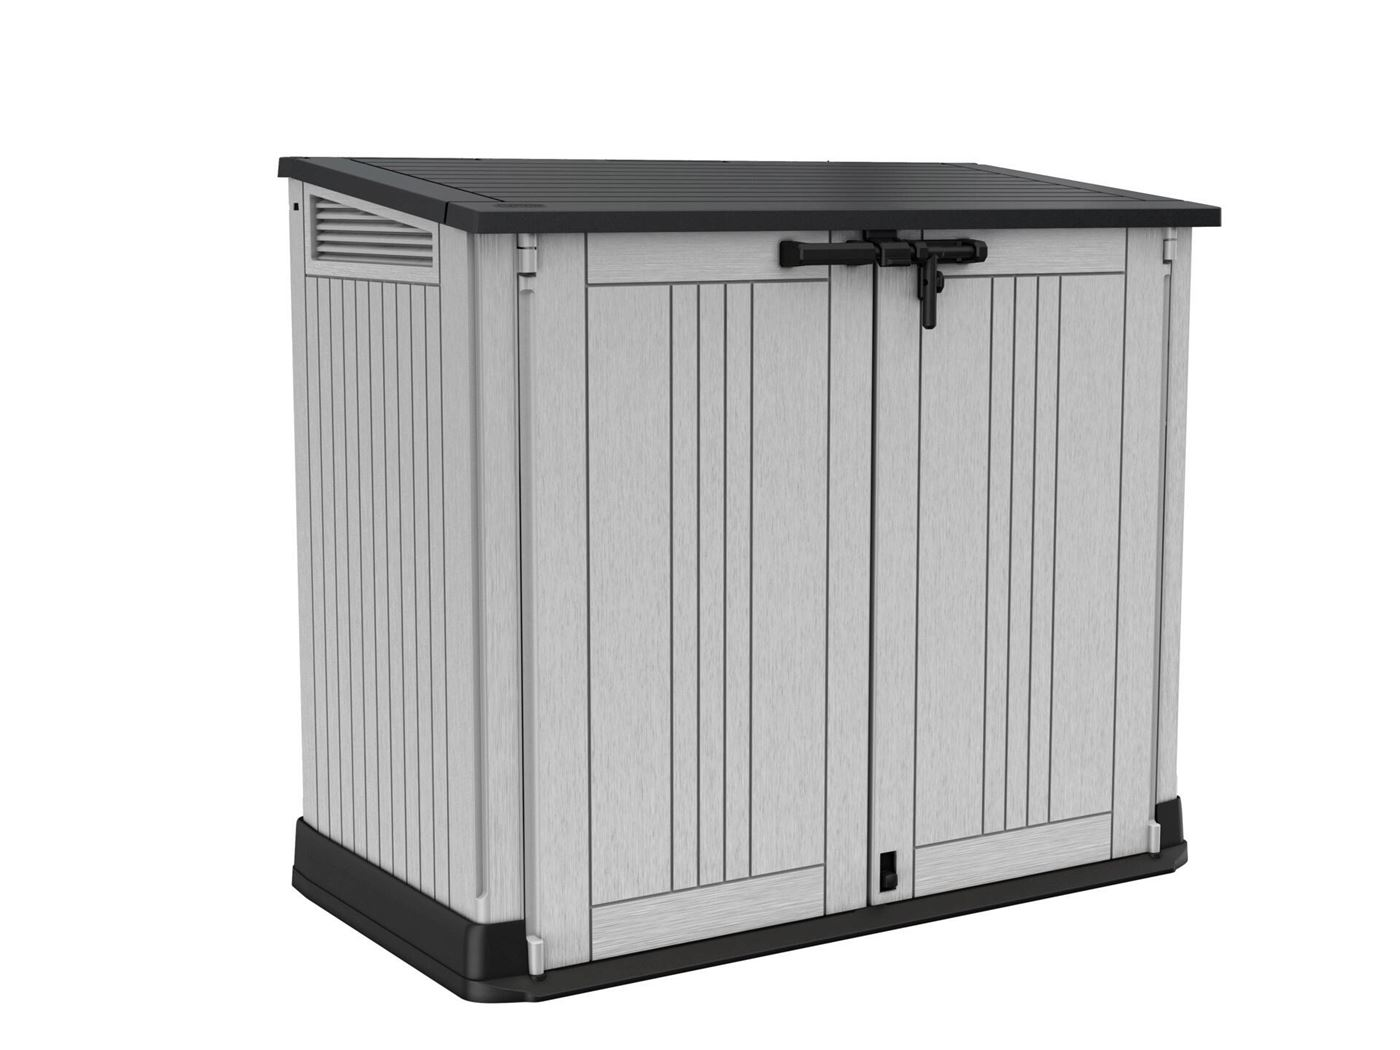 keter store-it-out midi prime